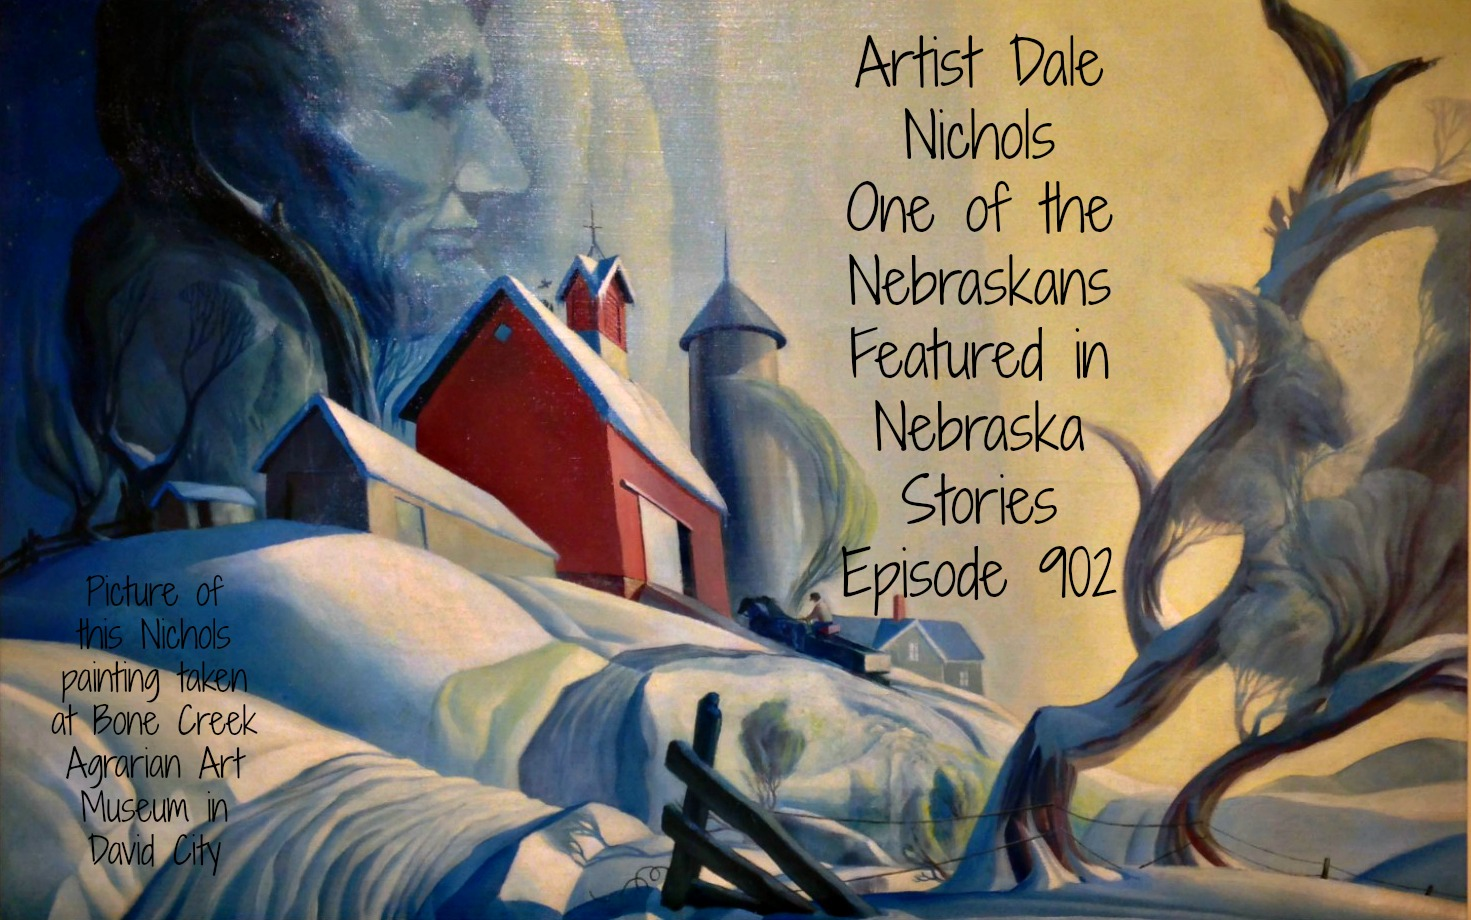 The message of Nebraska Stores Episode 902